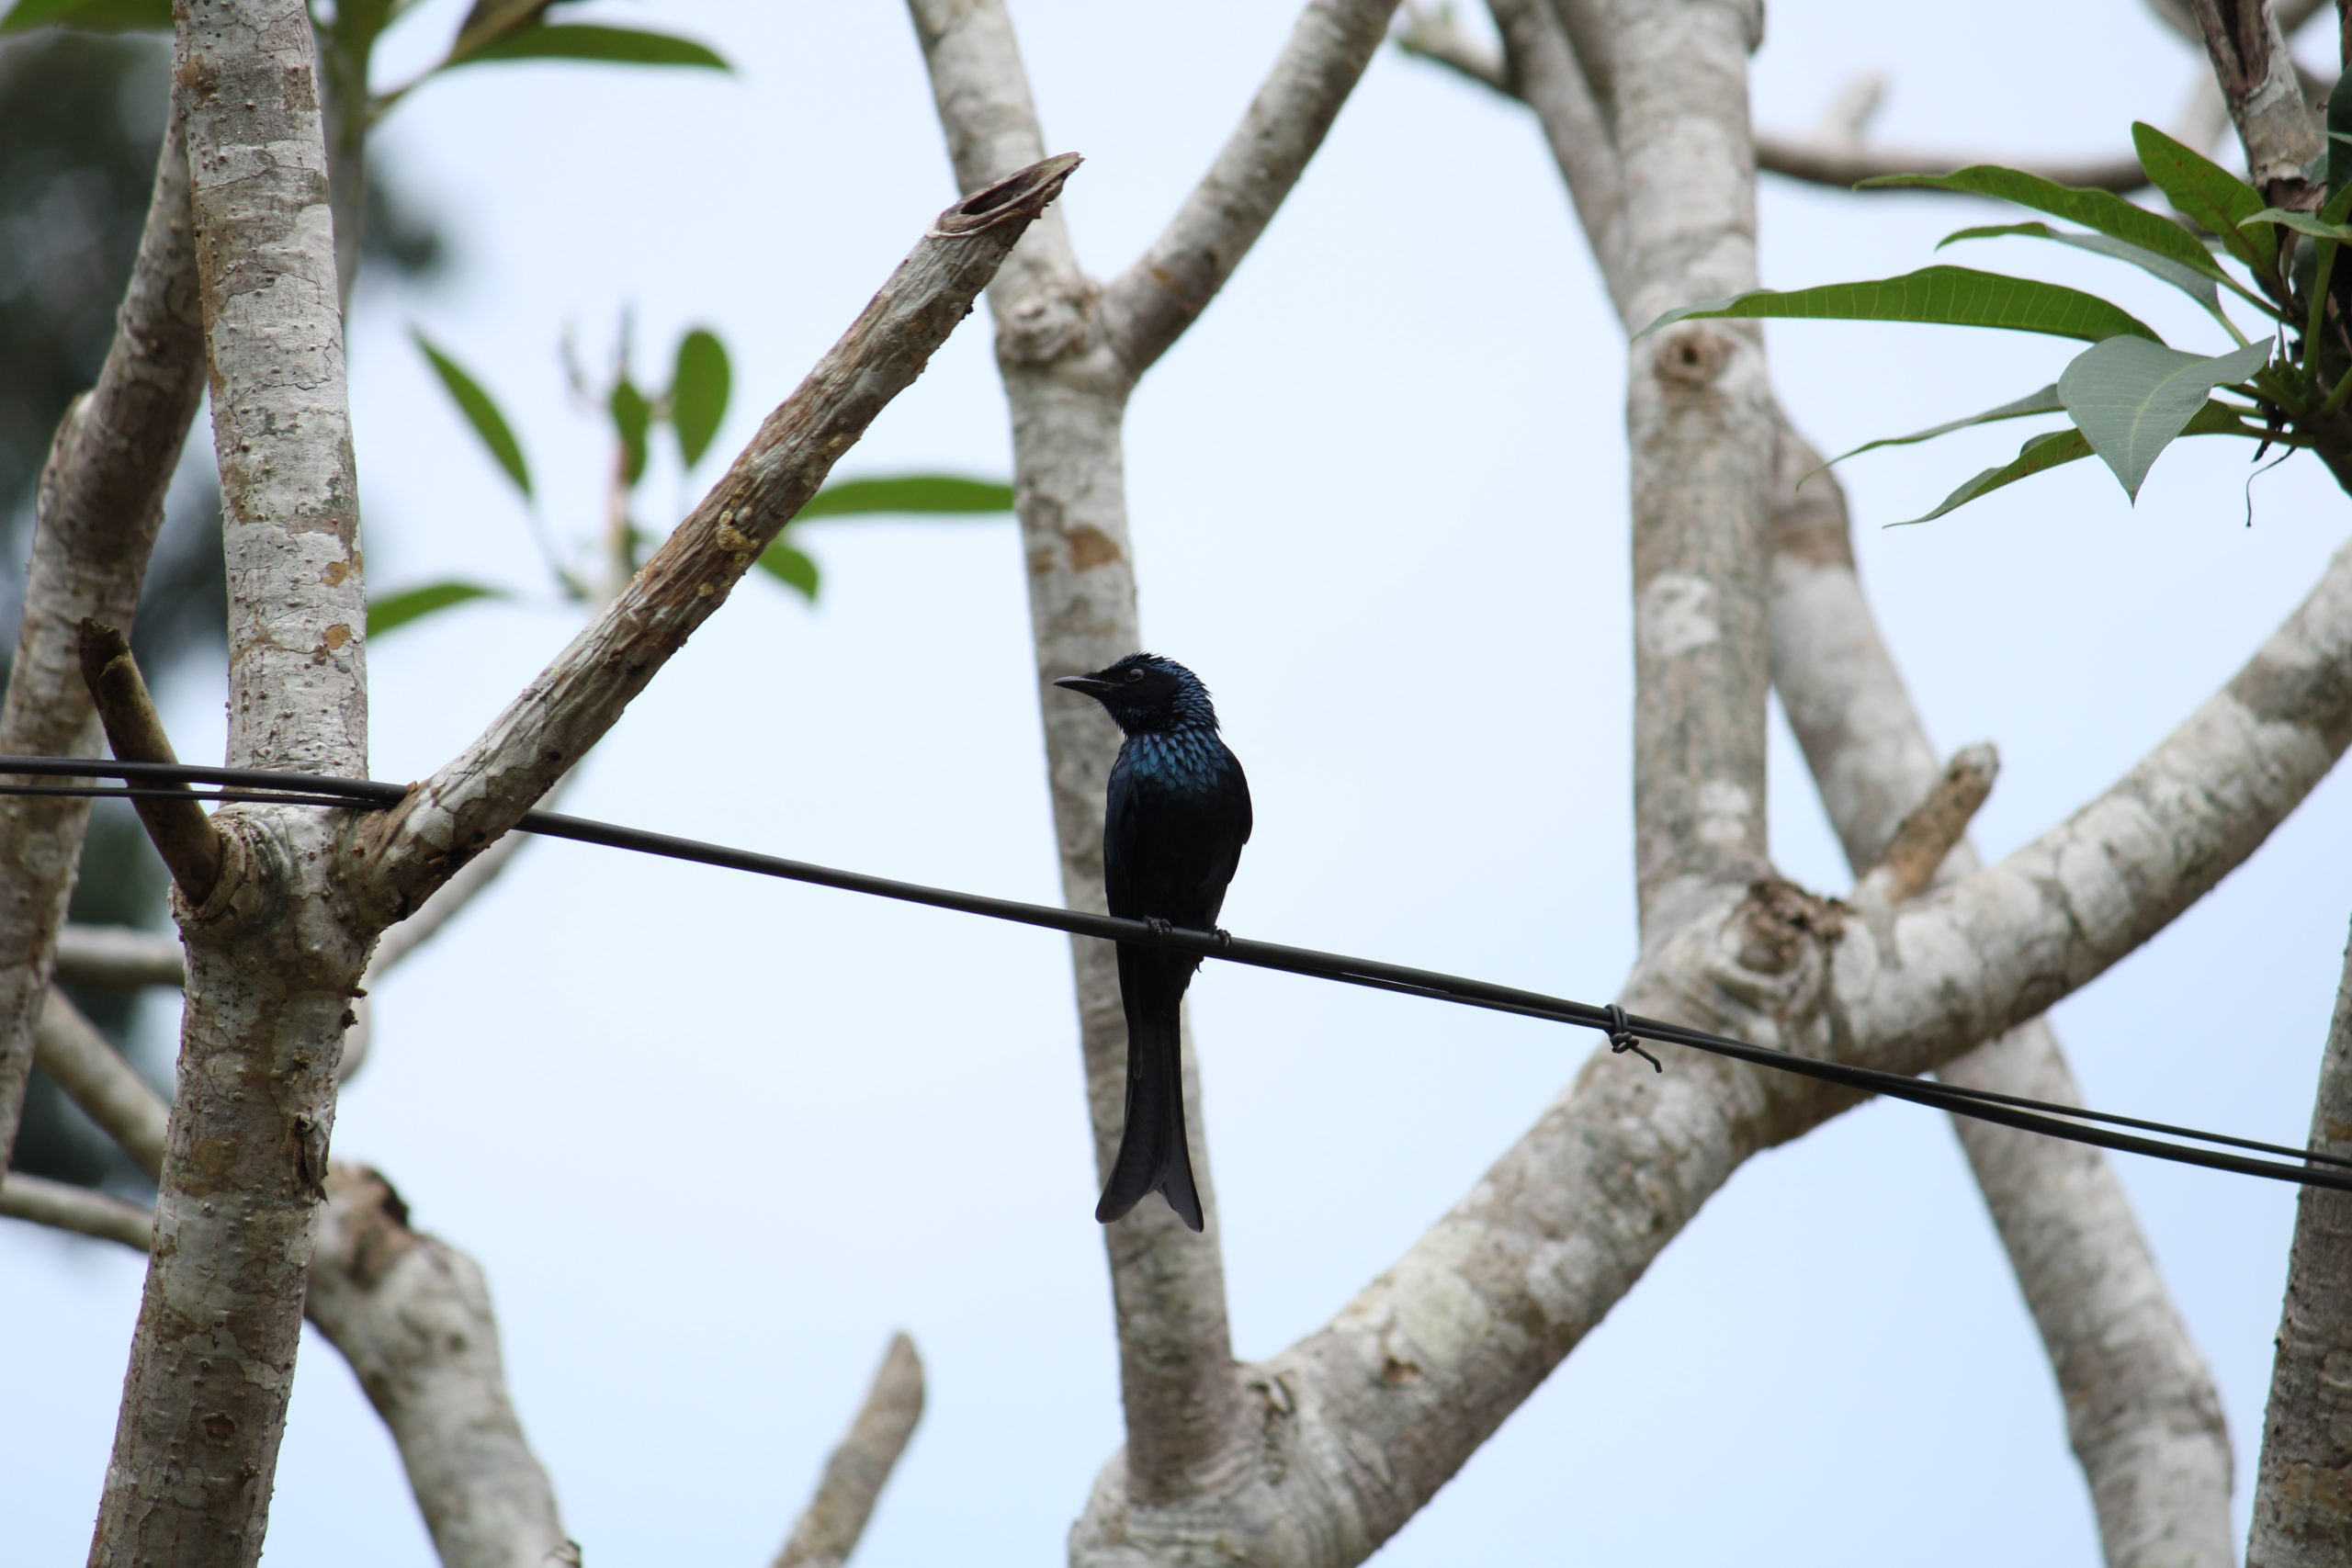 A bird sitting on an electric line